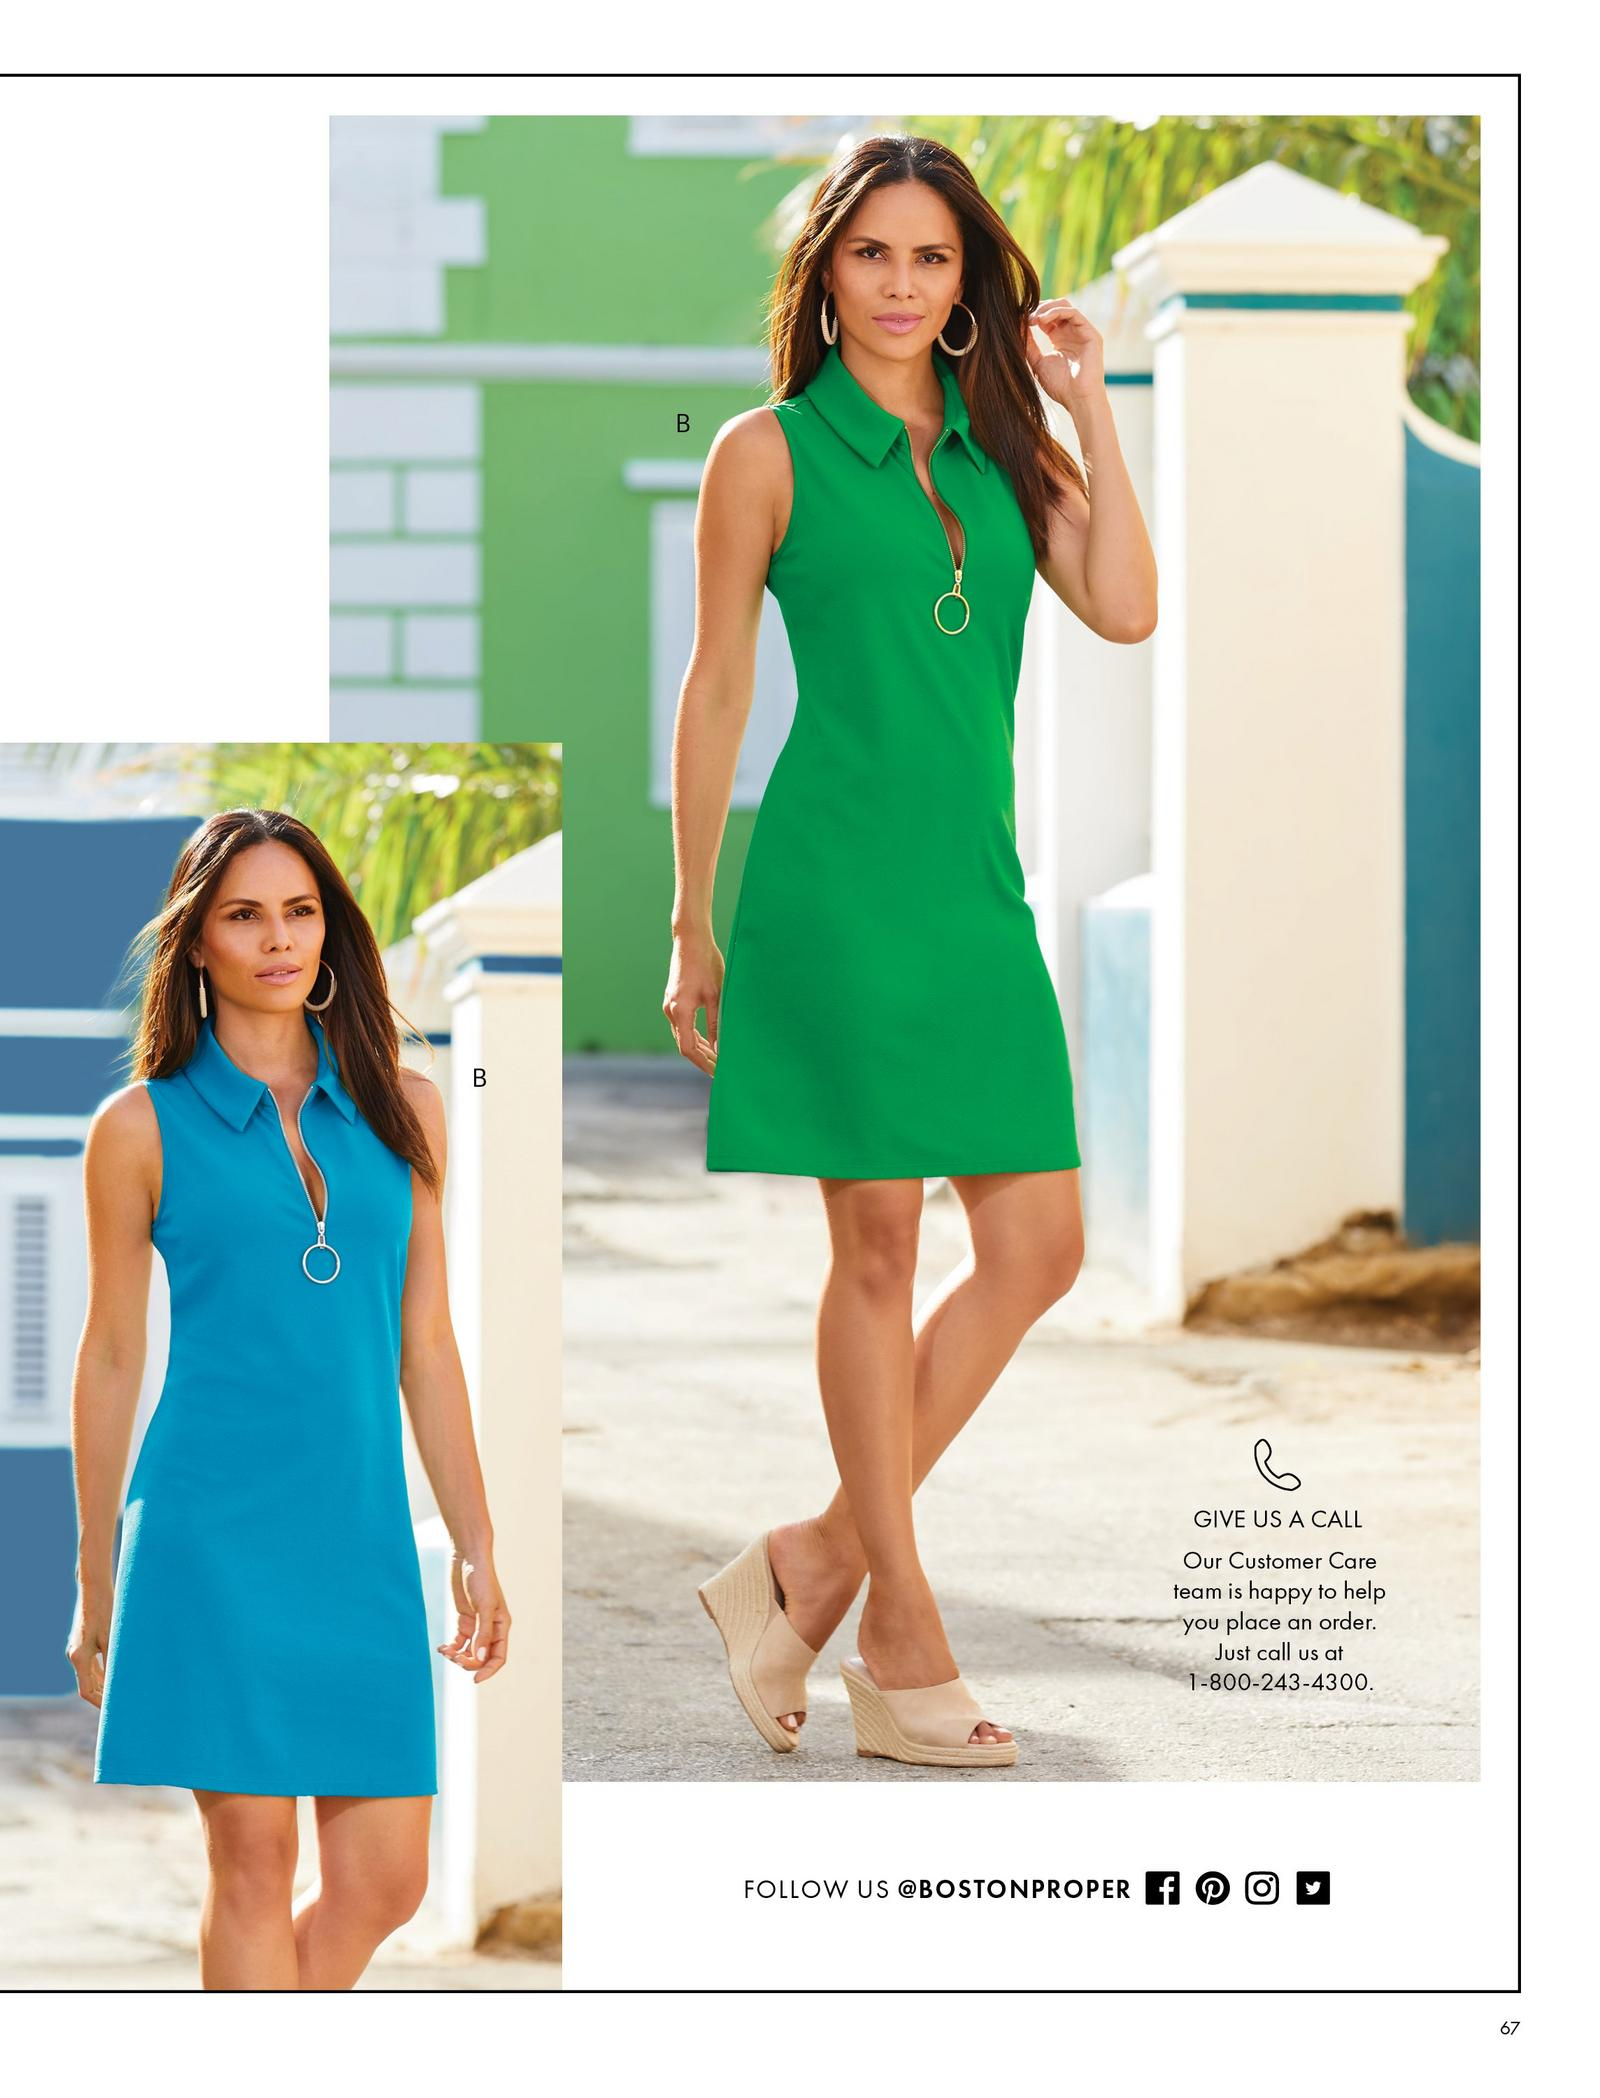 left model wearing a light blue sleeveless collared sport dress. right m,odel wearing the same dress in green.